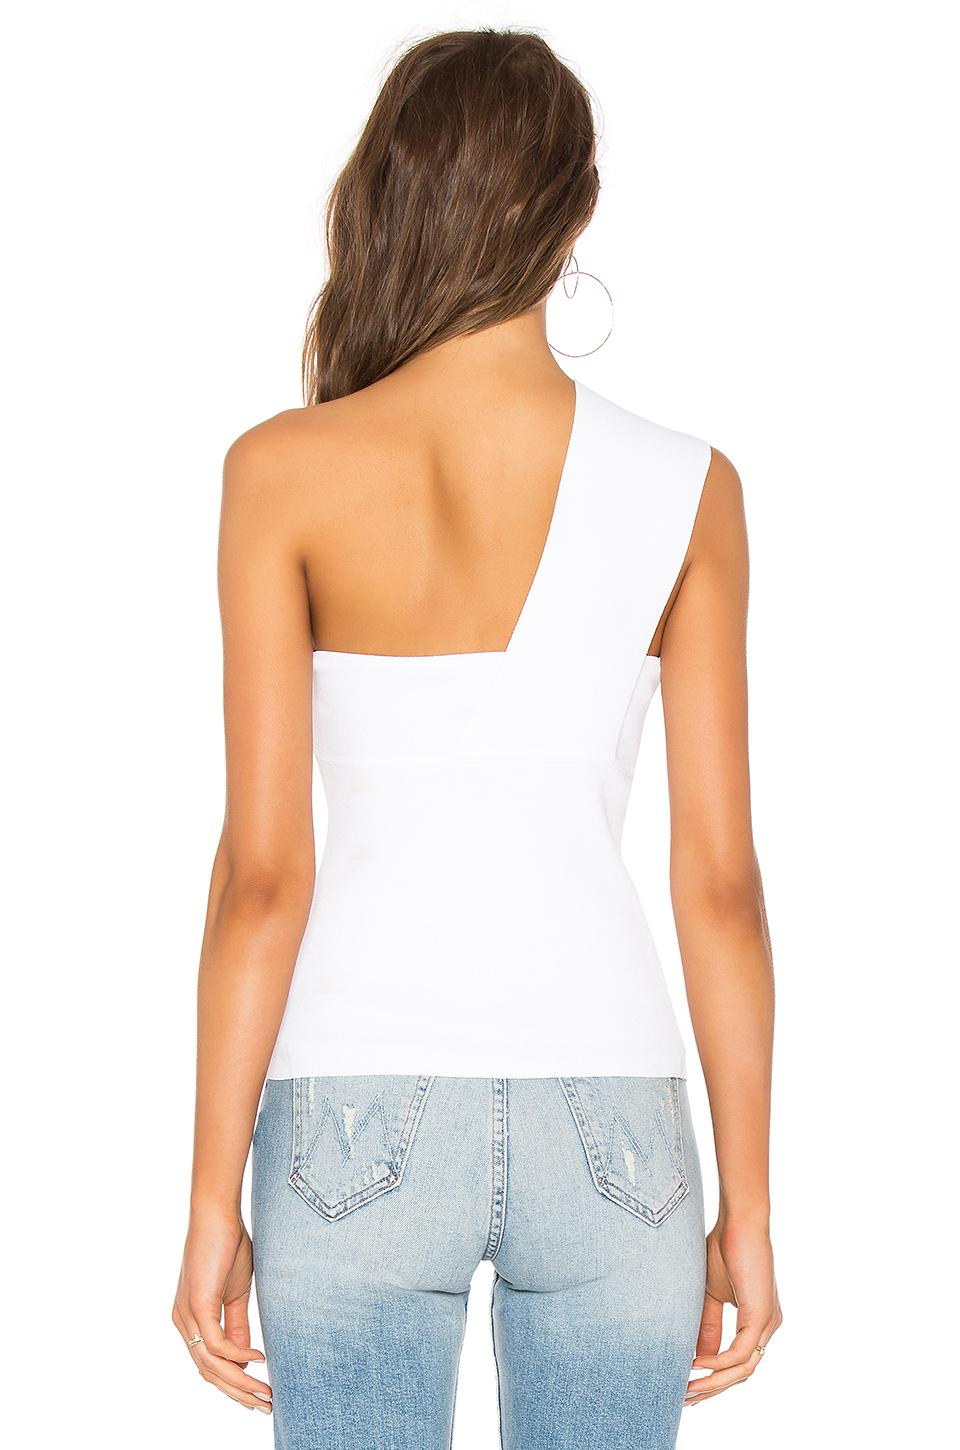 0c4e7b964642b0 Autumn Cashmere One Shoulder Tube Top in White - Lyst